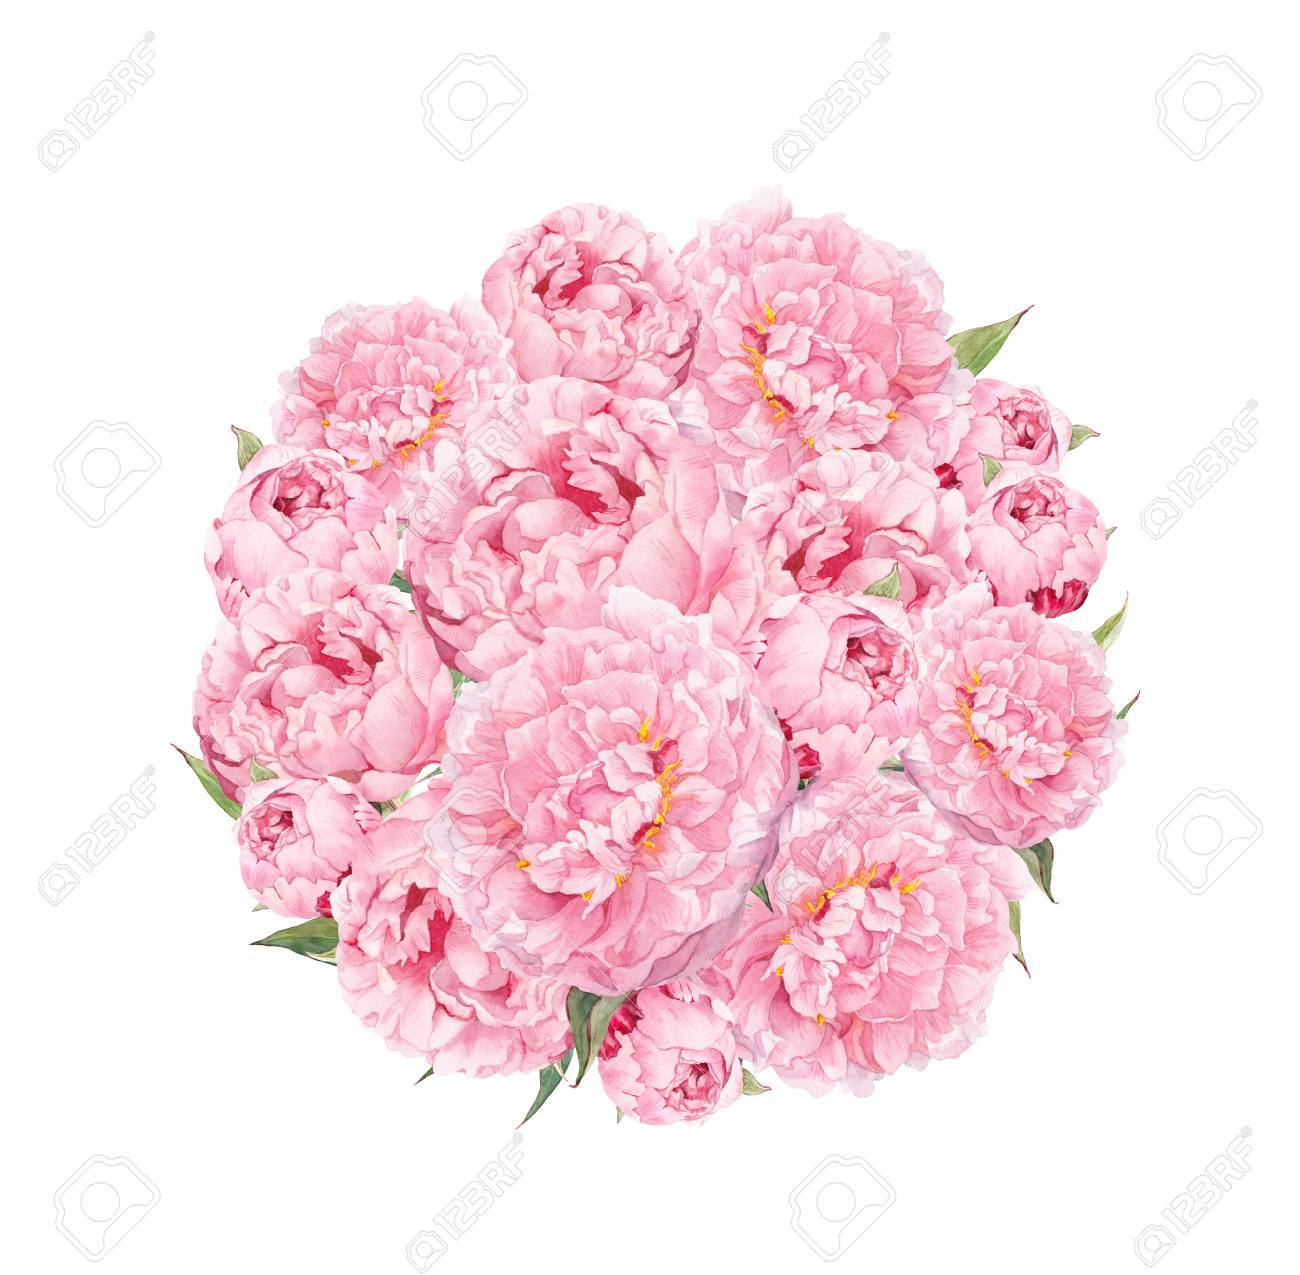 Flowers Pattern With Peonies Round Bouquet Of Pink Flowers